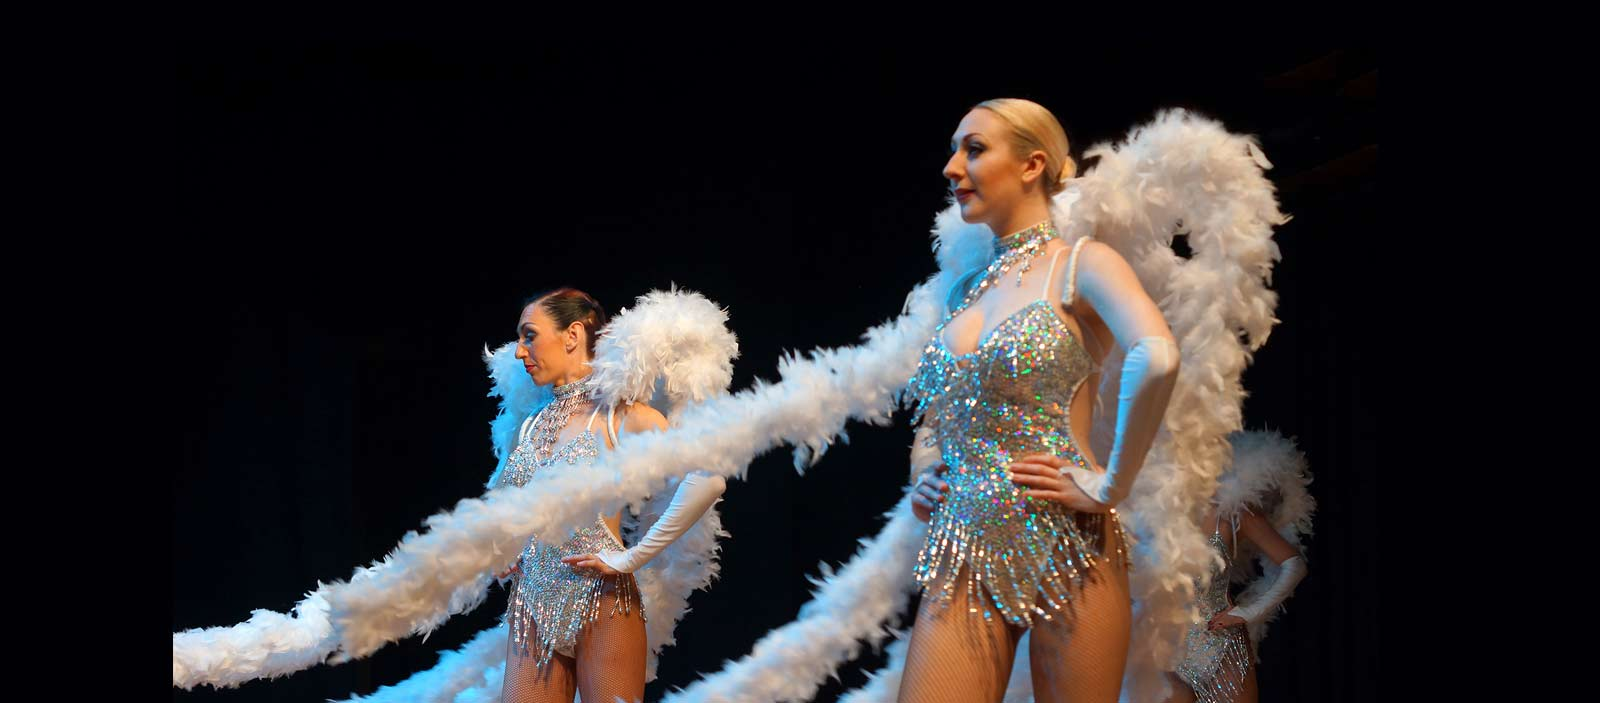 Las Vegas showgirls in silver and white costumes